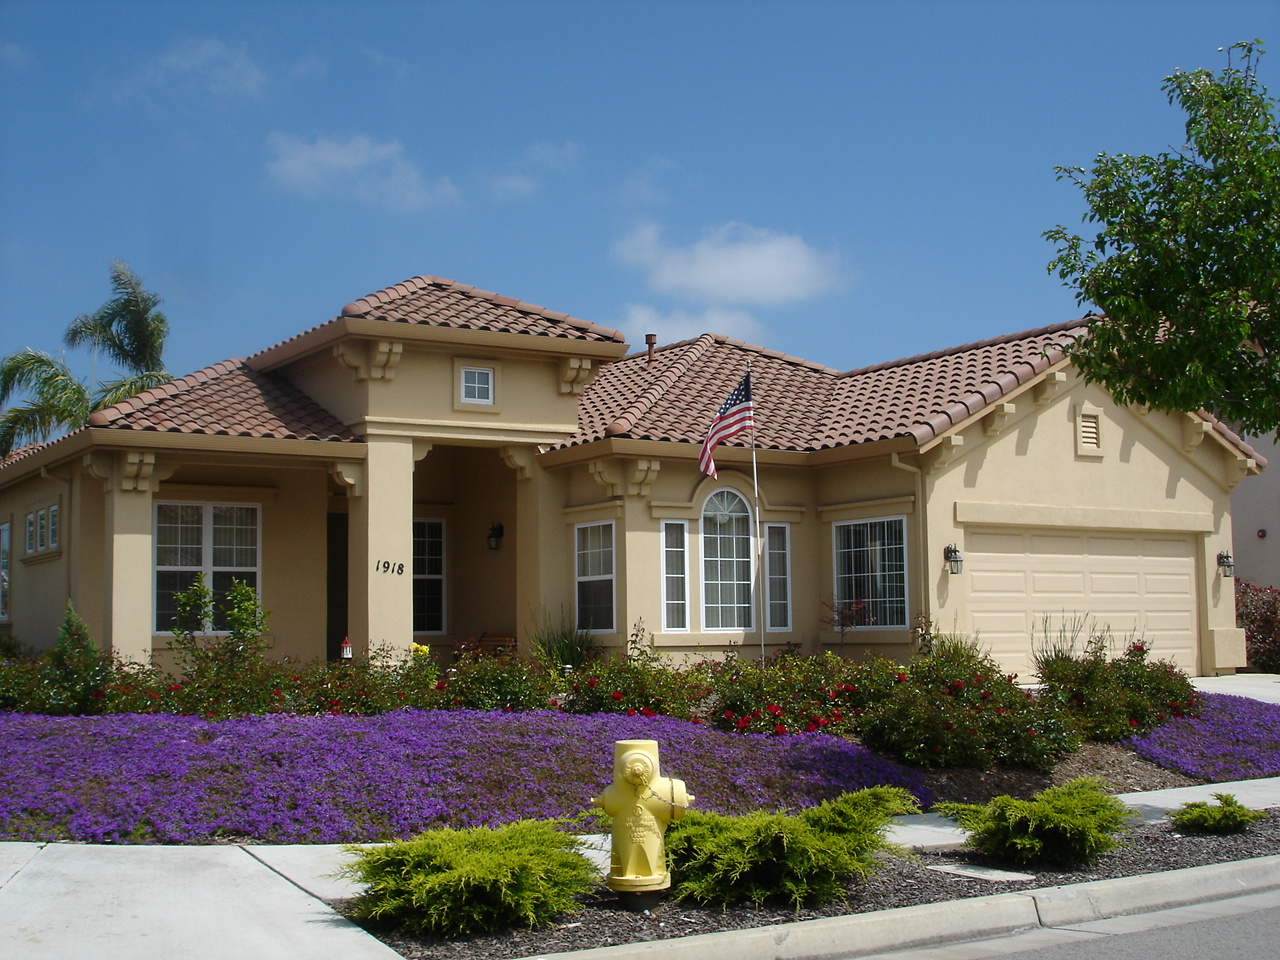 Ranch_style_home_in_Salinas__California.JPG